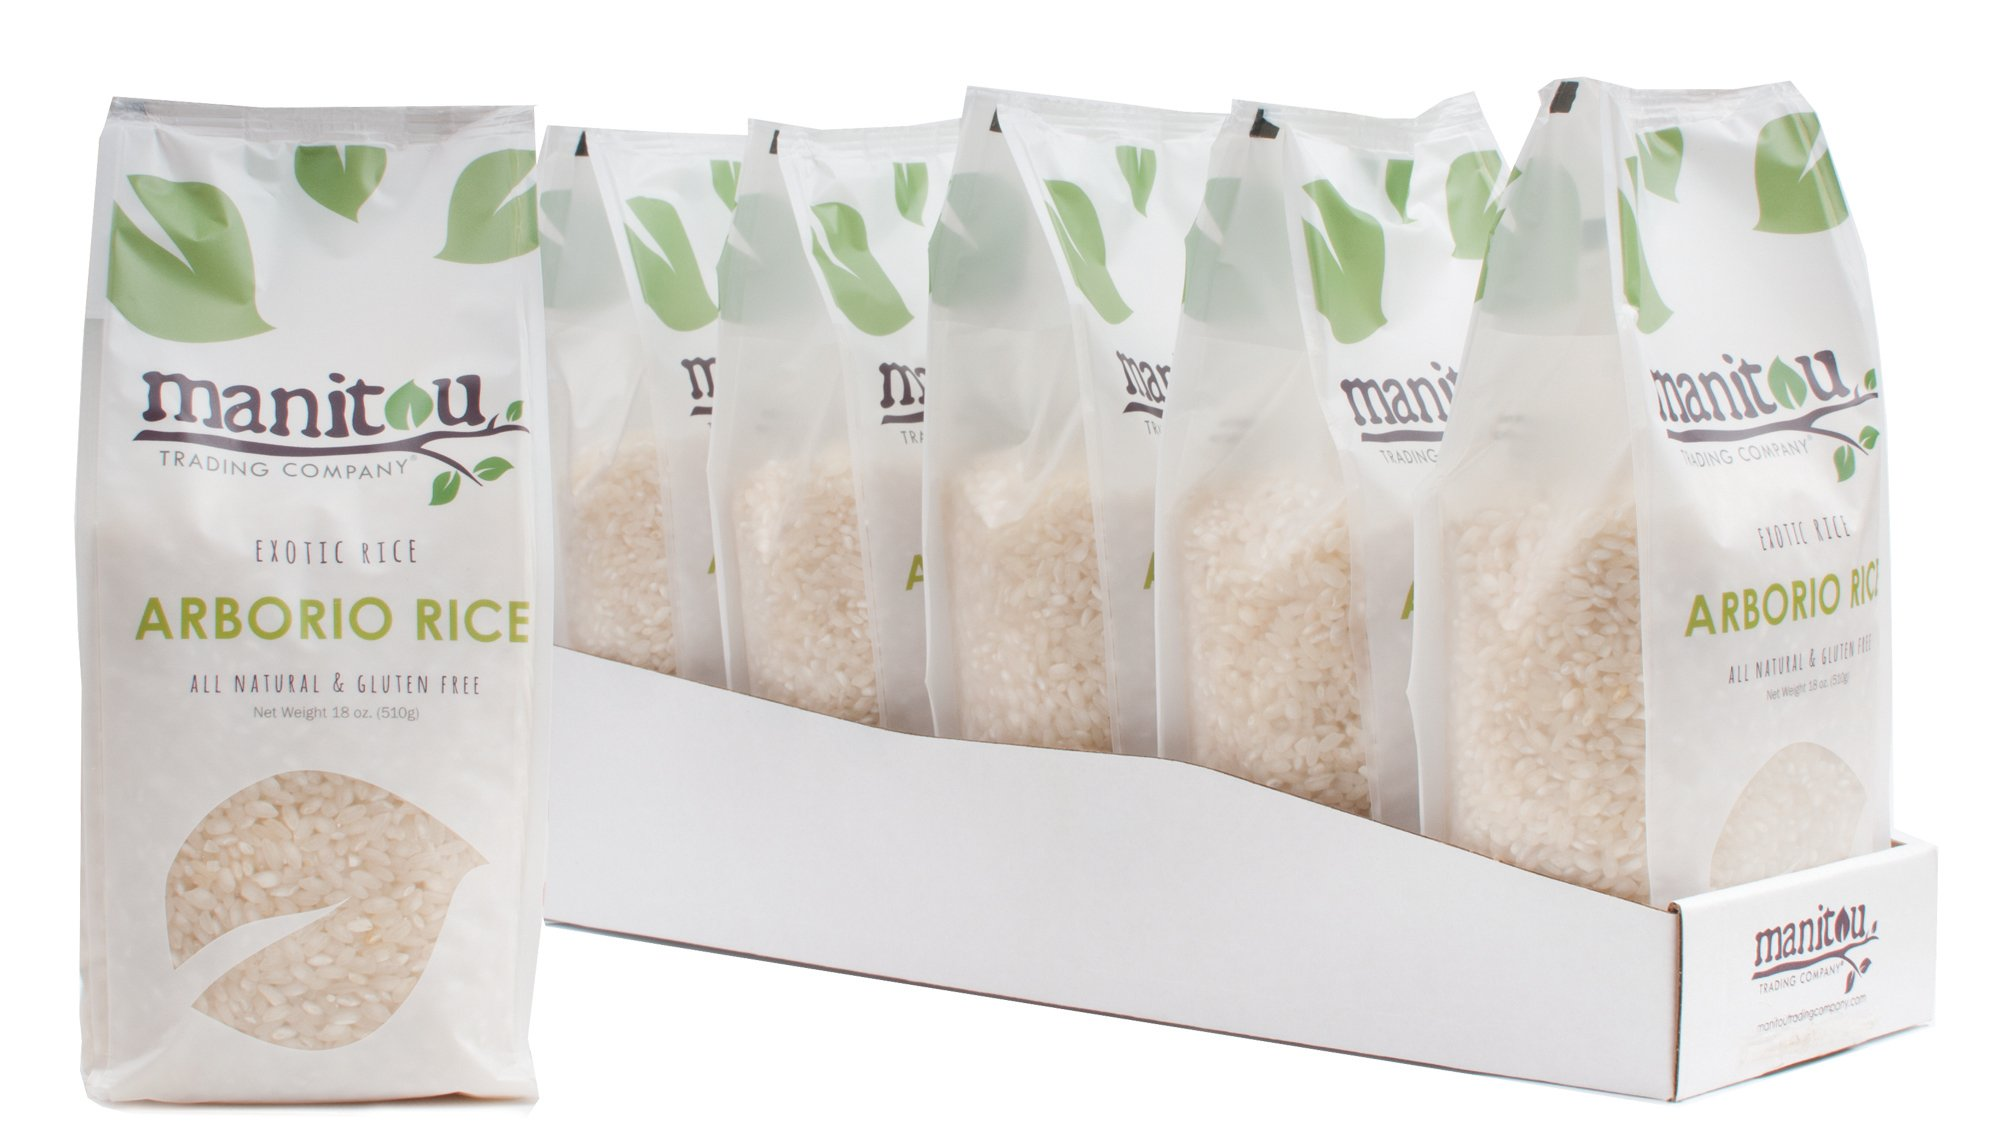 Arborio Rice by Manitou Trading Company, 18-Ounce, 6 Pack Sleeve